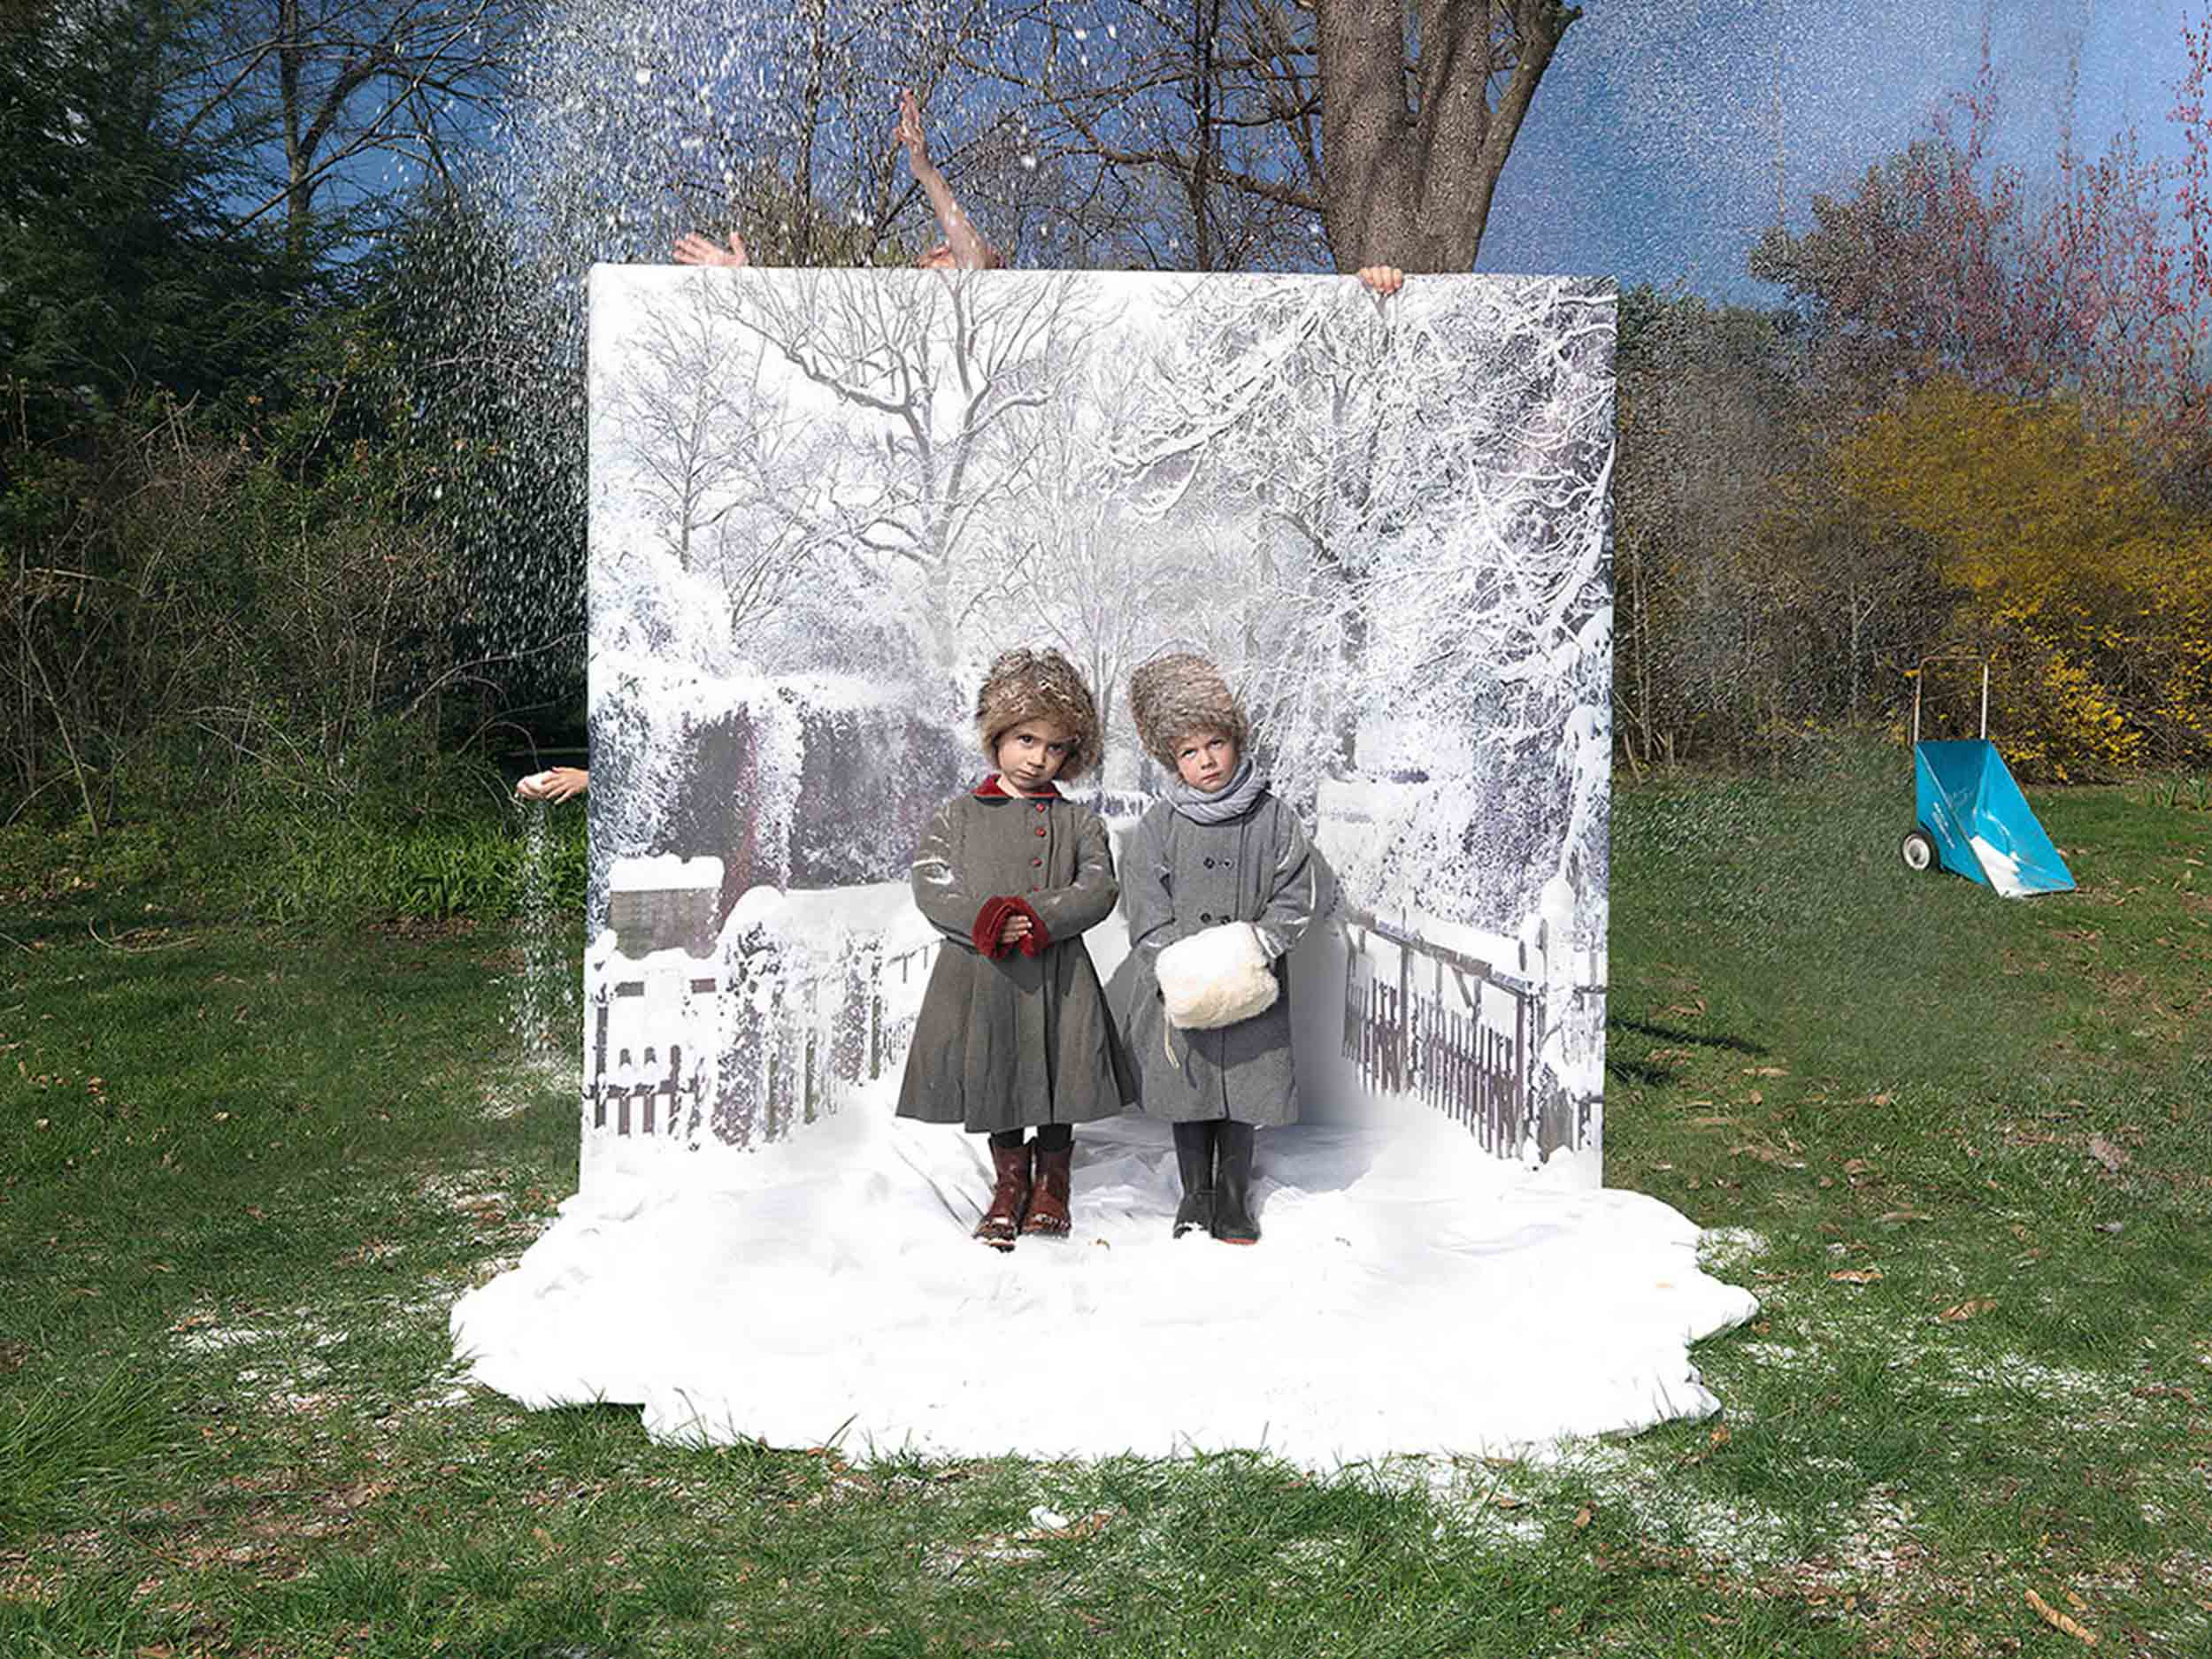 Julie Blackmon on her photo 'Fake Weather'